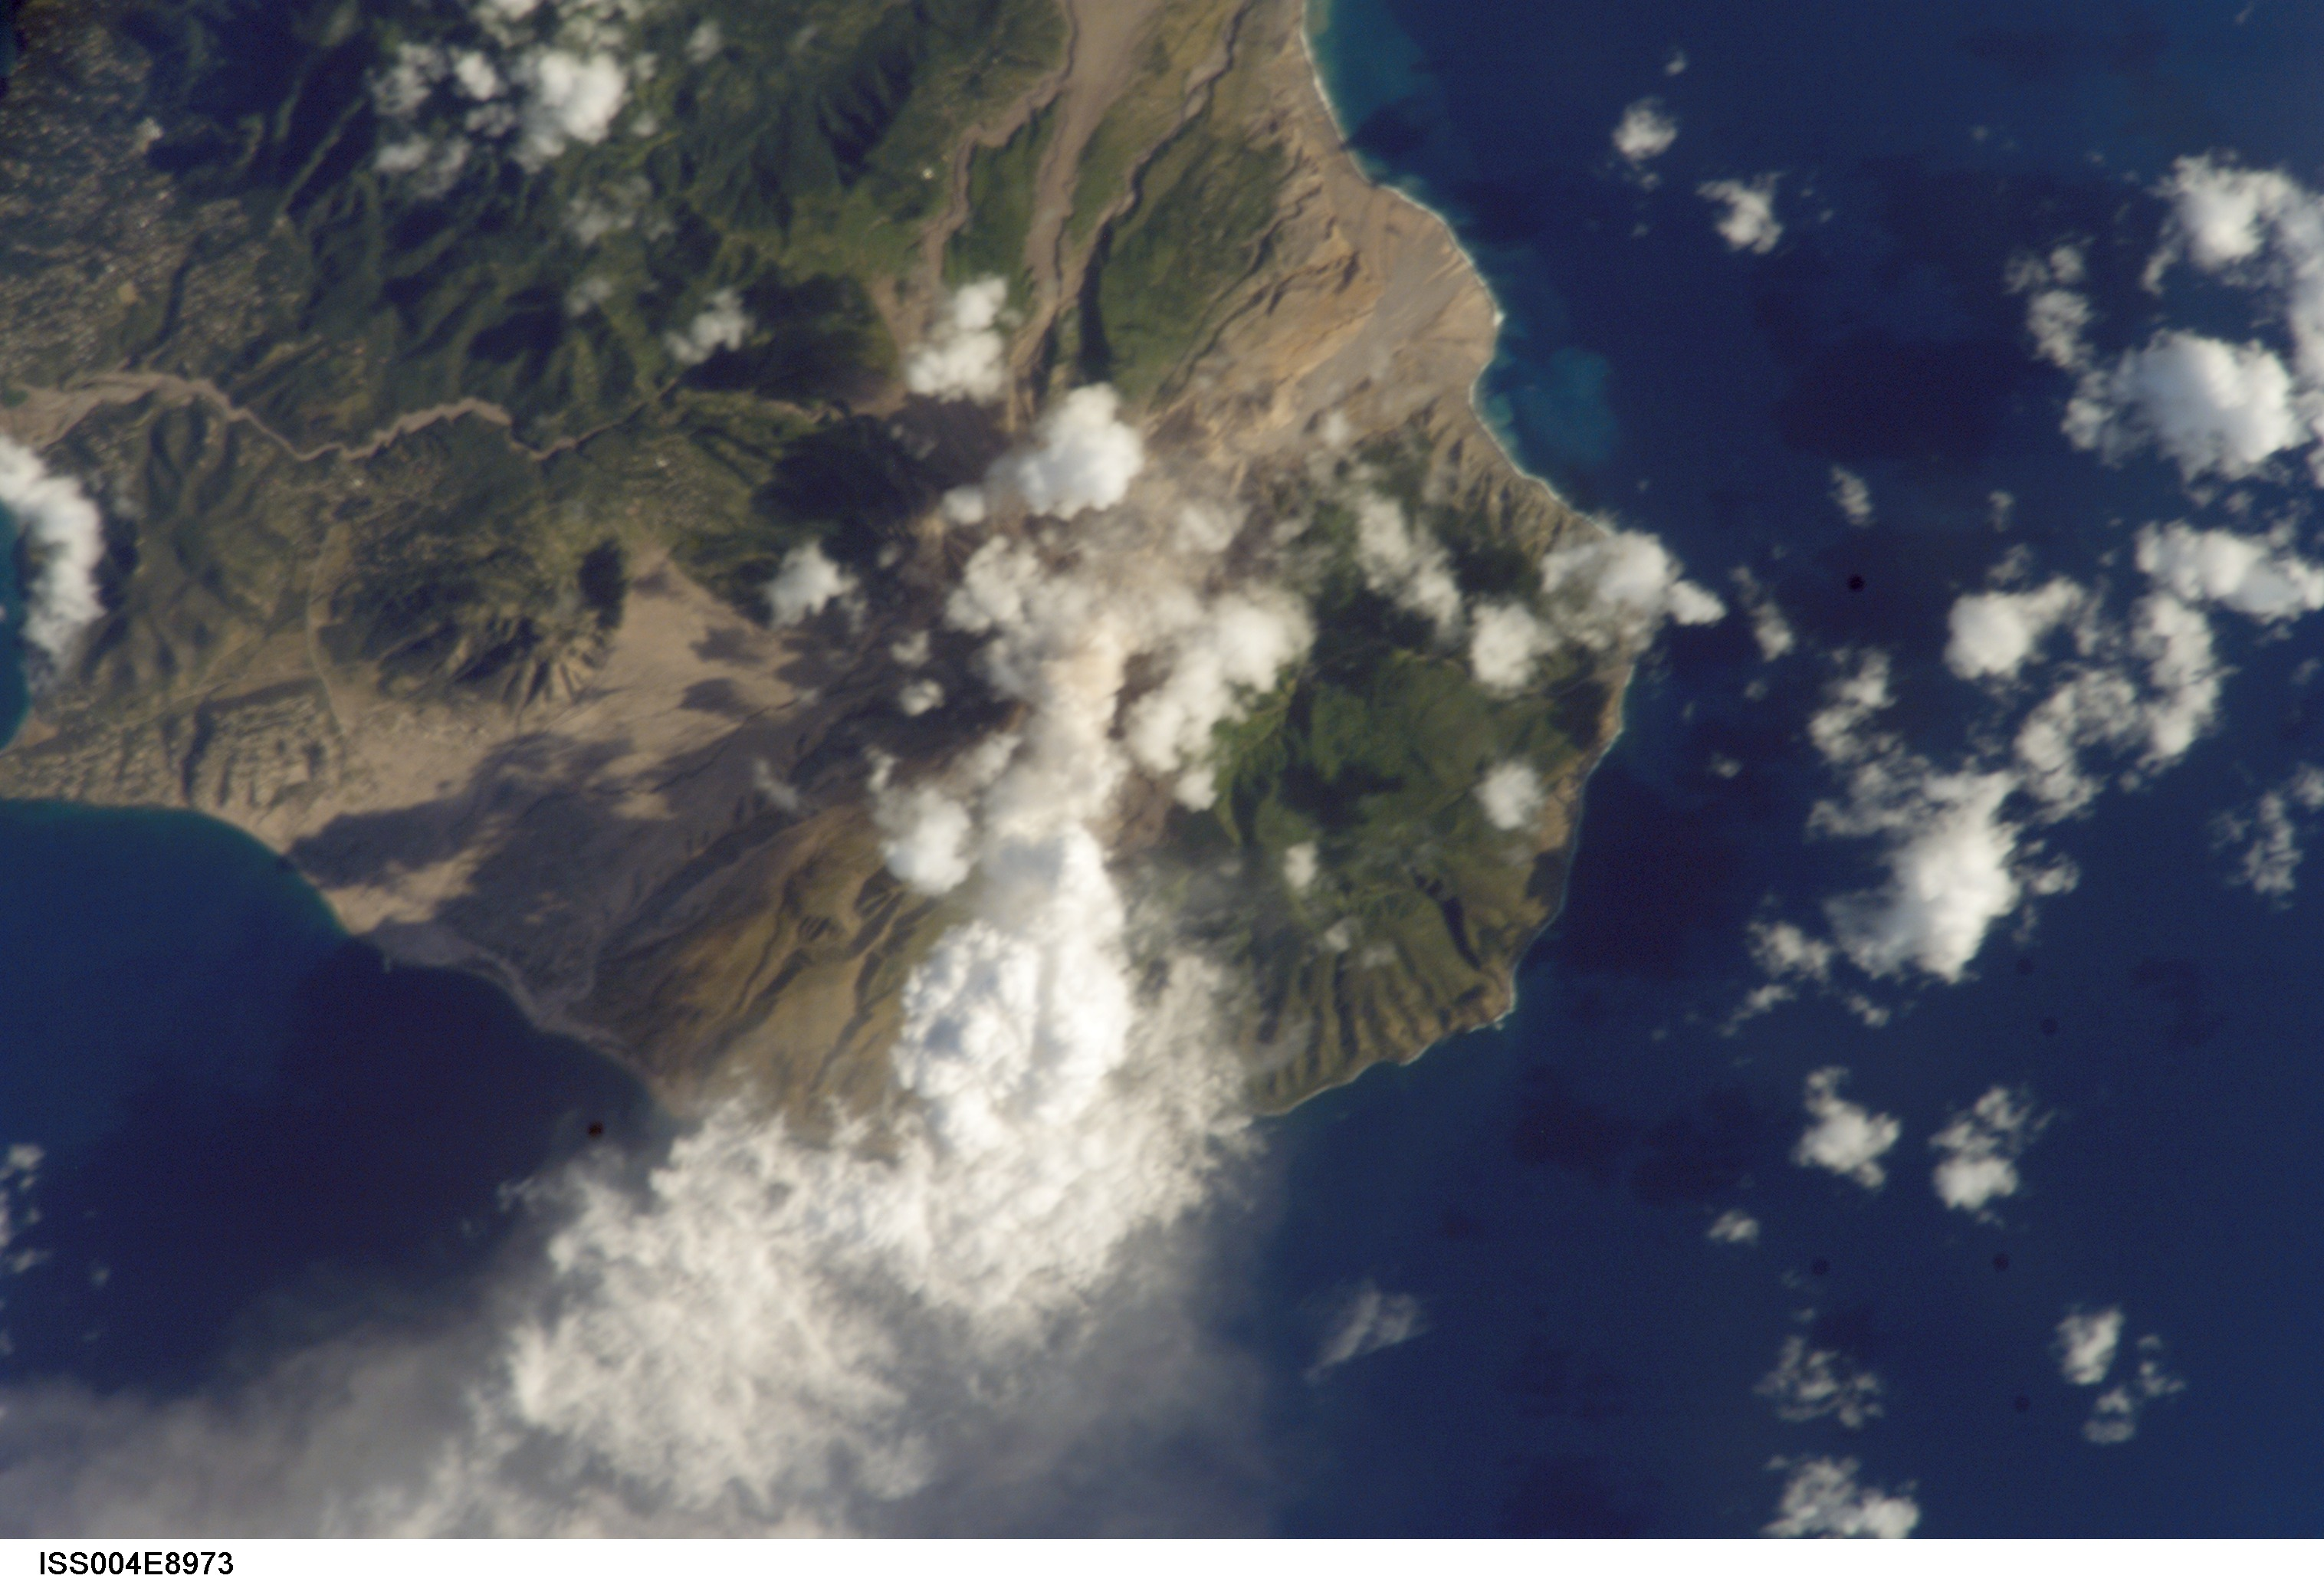 Ash and Steam, Soufriere Hills Volcano, Monserrat - related image preview